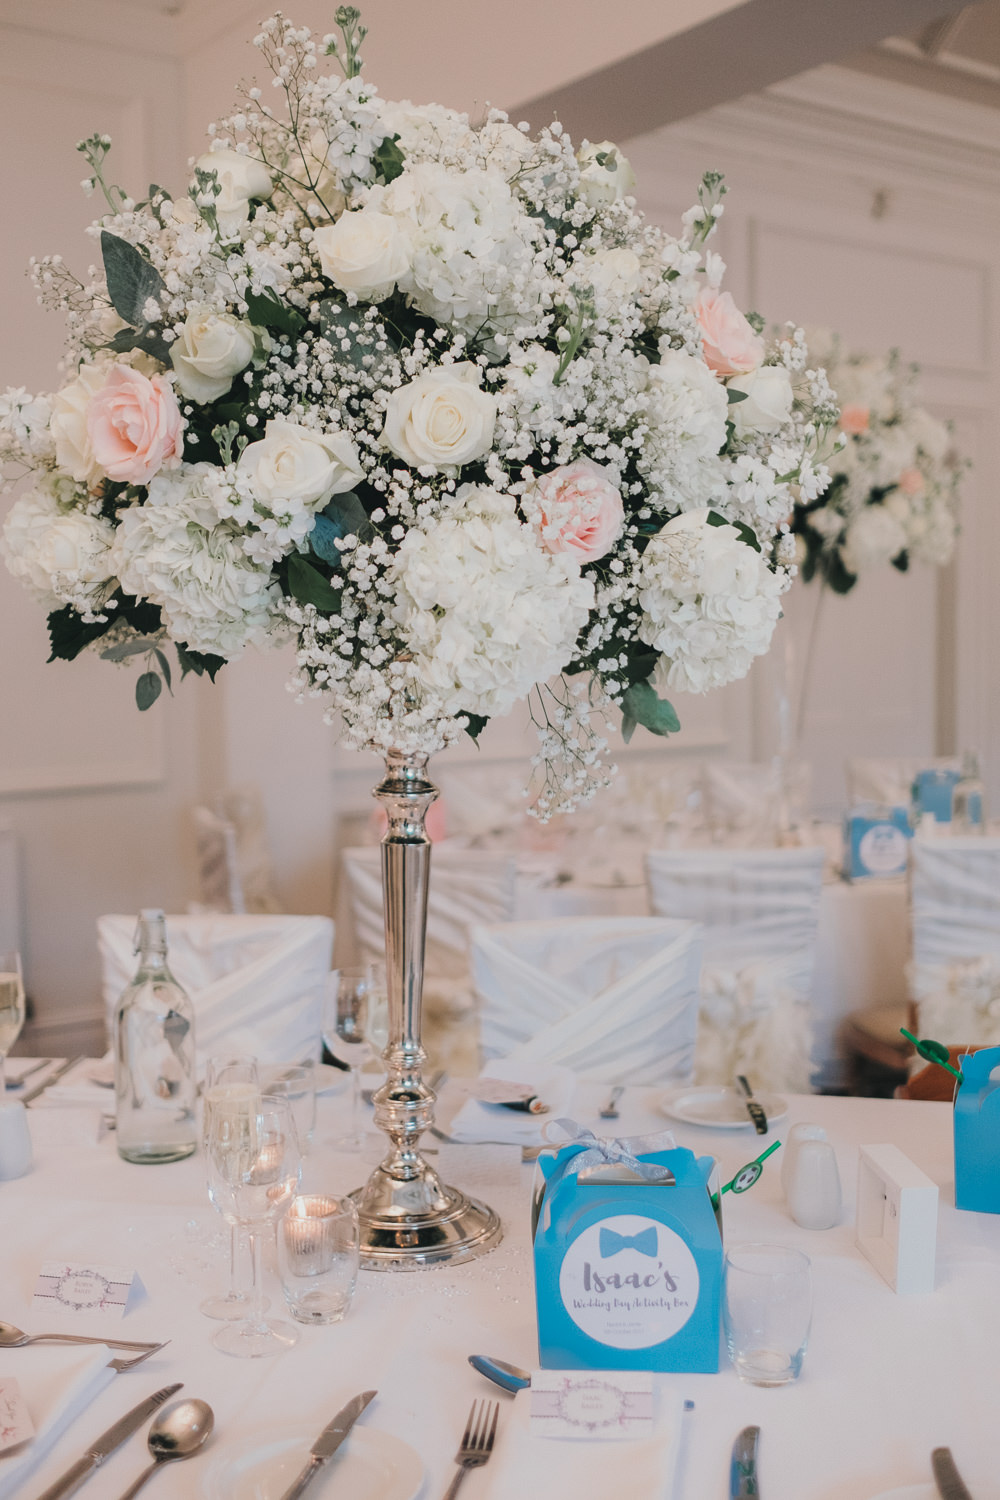 Dinner Reception Classic Elegant Tall White Blush Flowers Roses Gypsophila Baby's Breath Kids Activity Pack | Ashfield House Wedding Kate McCarthy Photography